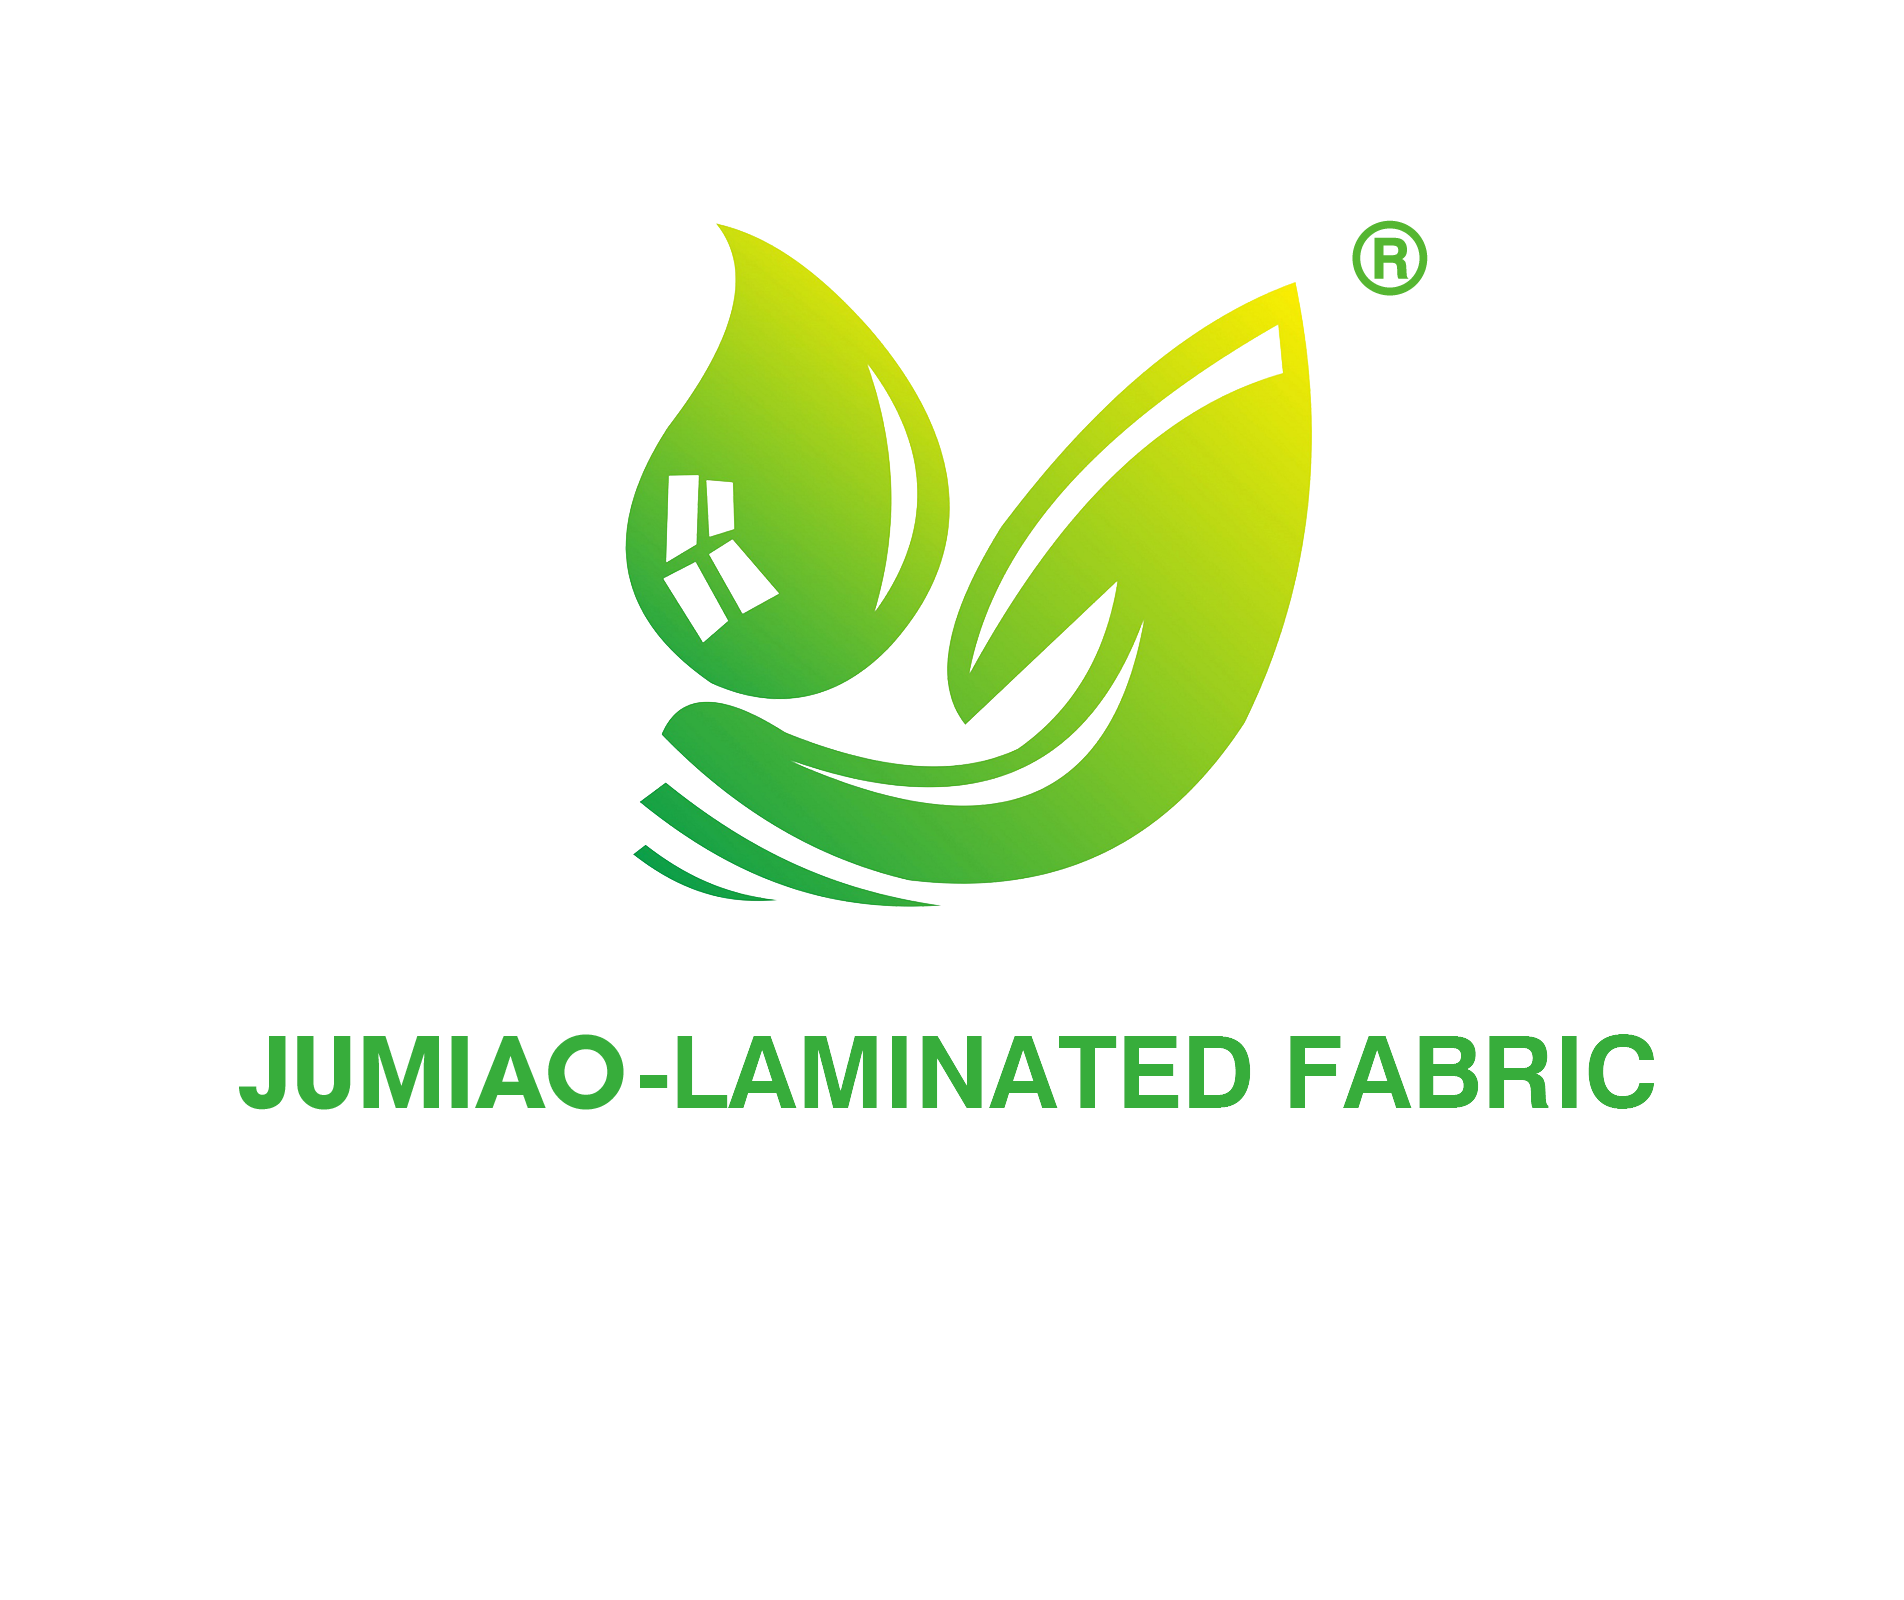 Zhejiang Ju Miao Laminated Fabric Co., Ltd